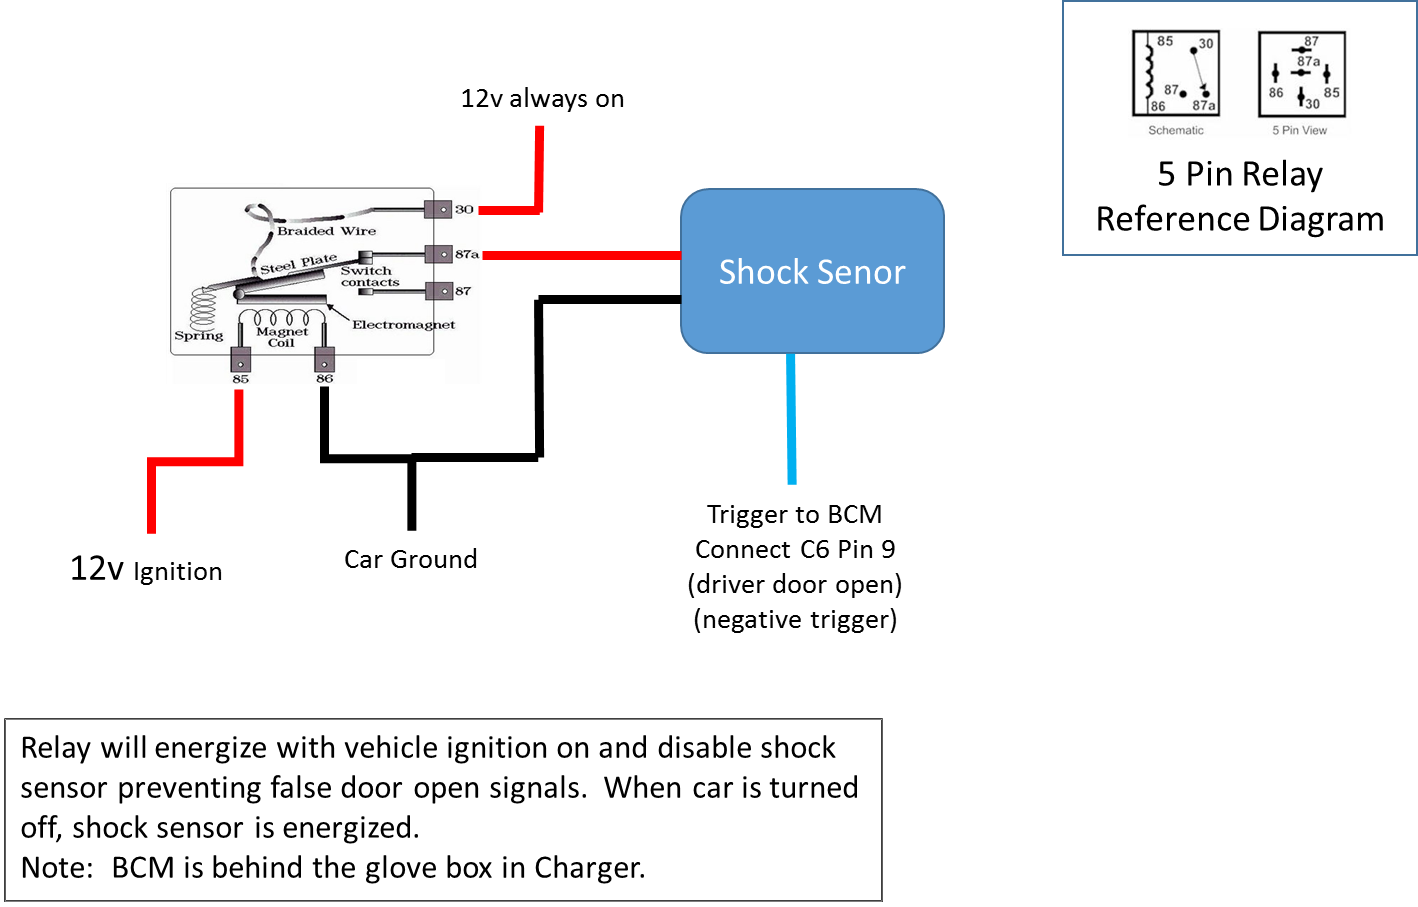 shock sensor wiring diagram wanting to add shock sensor to factory charger hc alarm ...